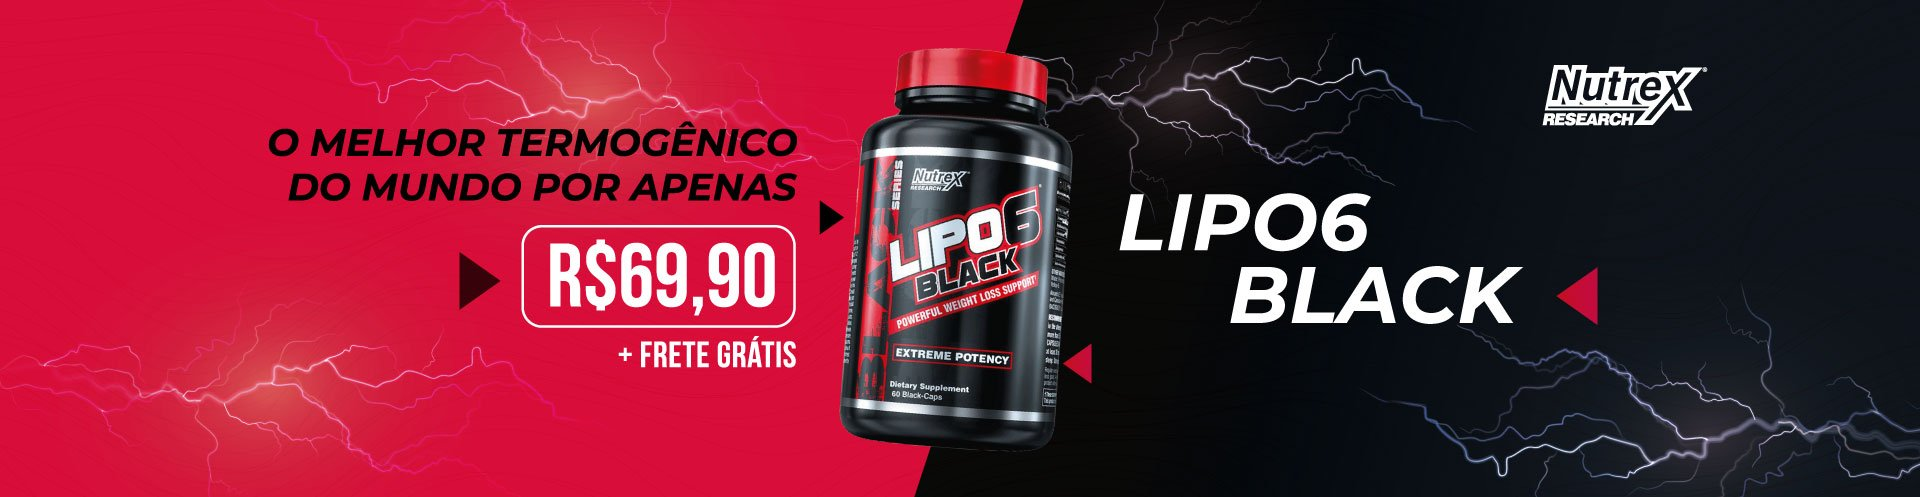 LIPO 6 BLACK  ULTRA CONCENTRADO NUTREX - 60 CAPS